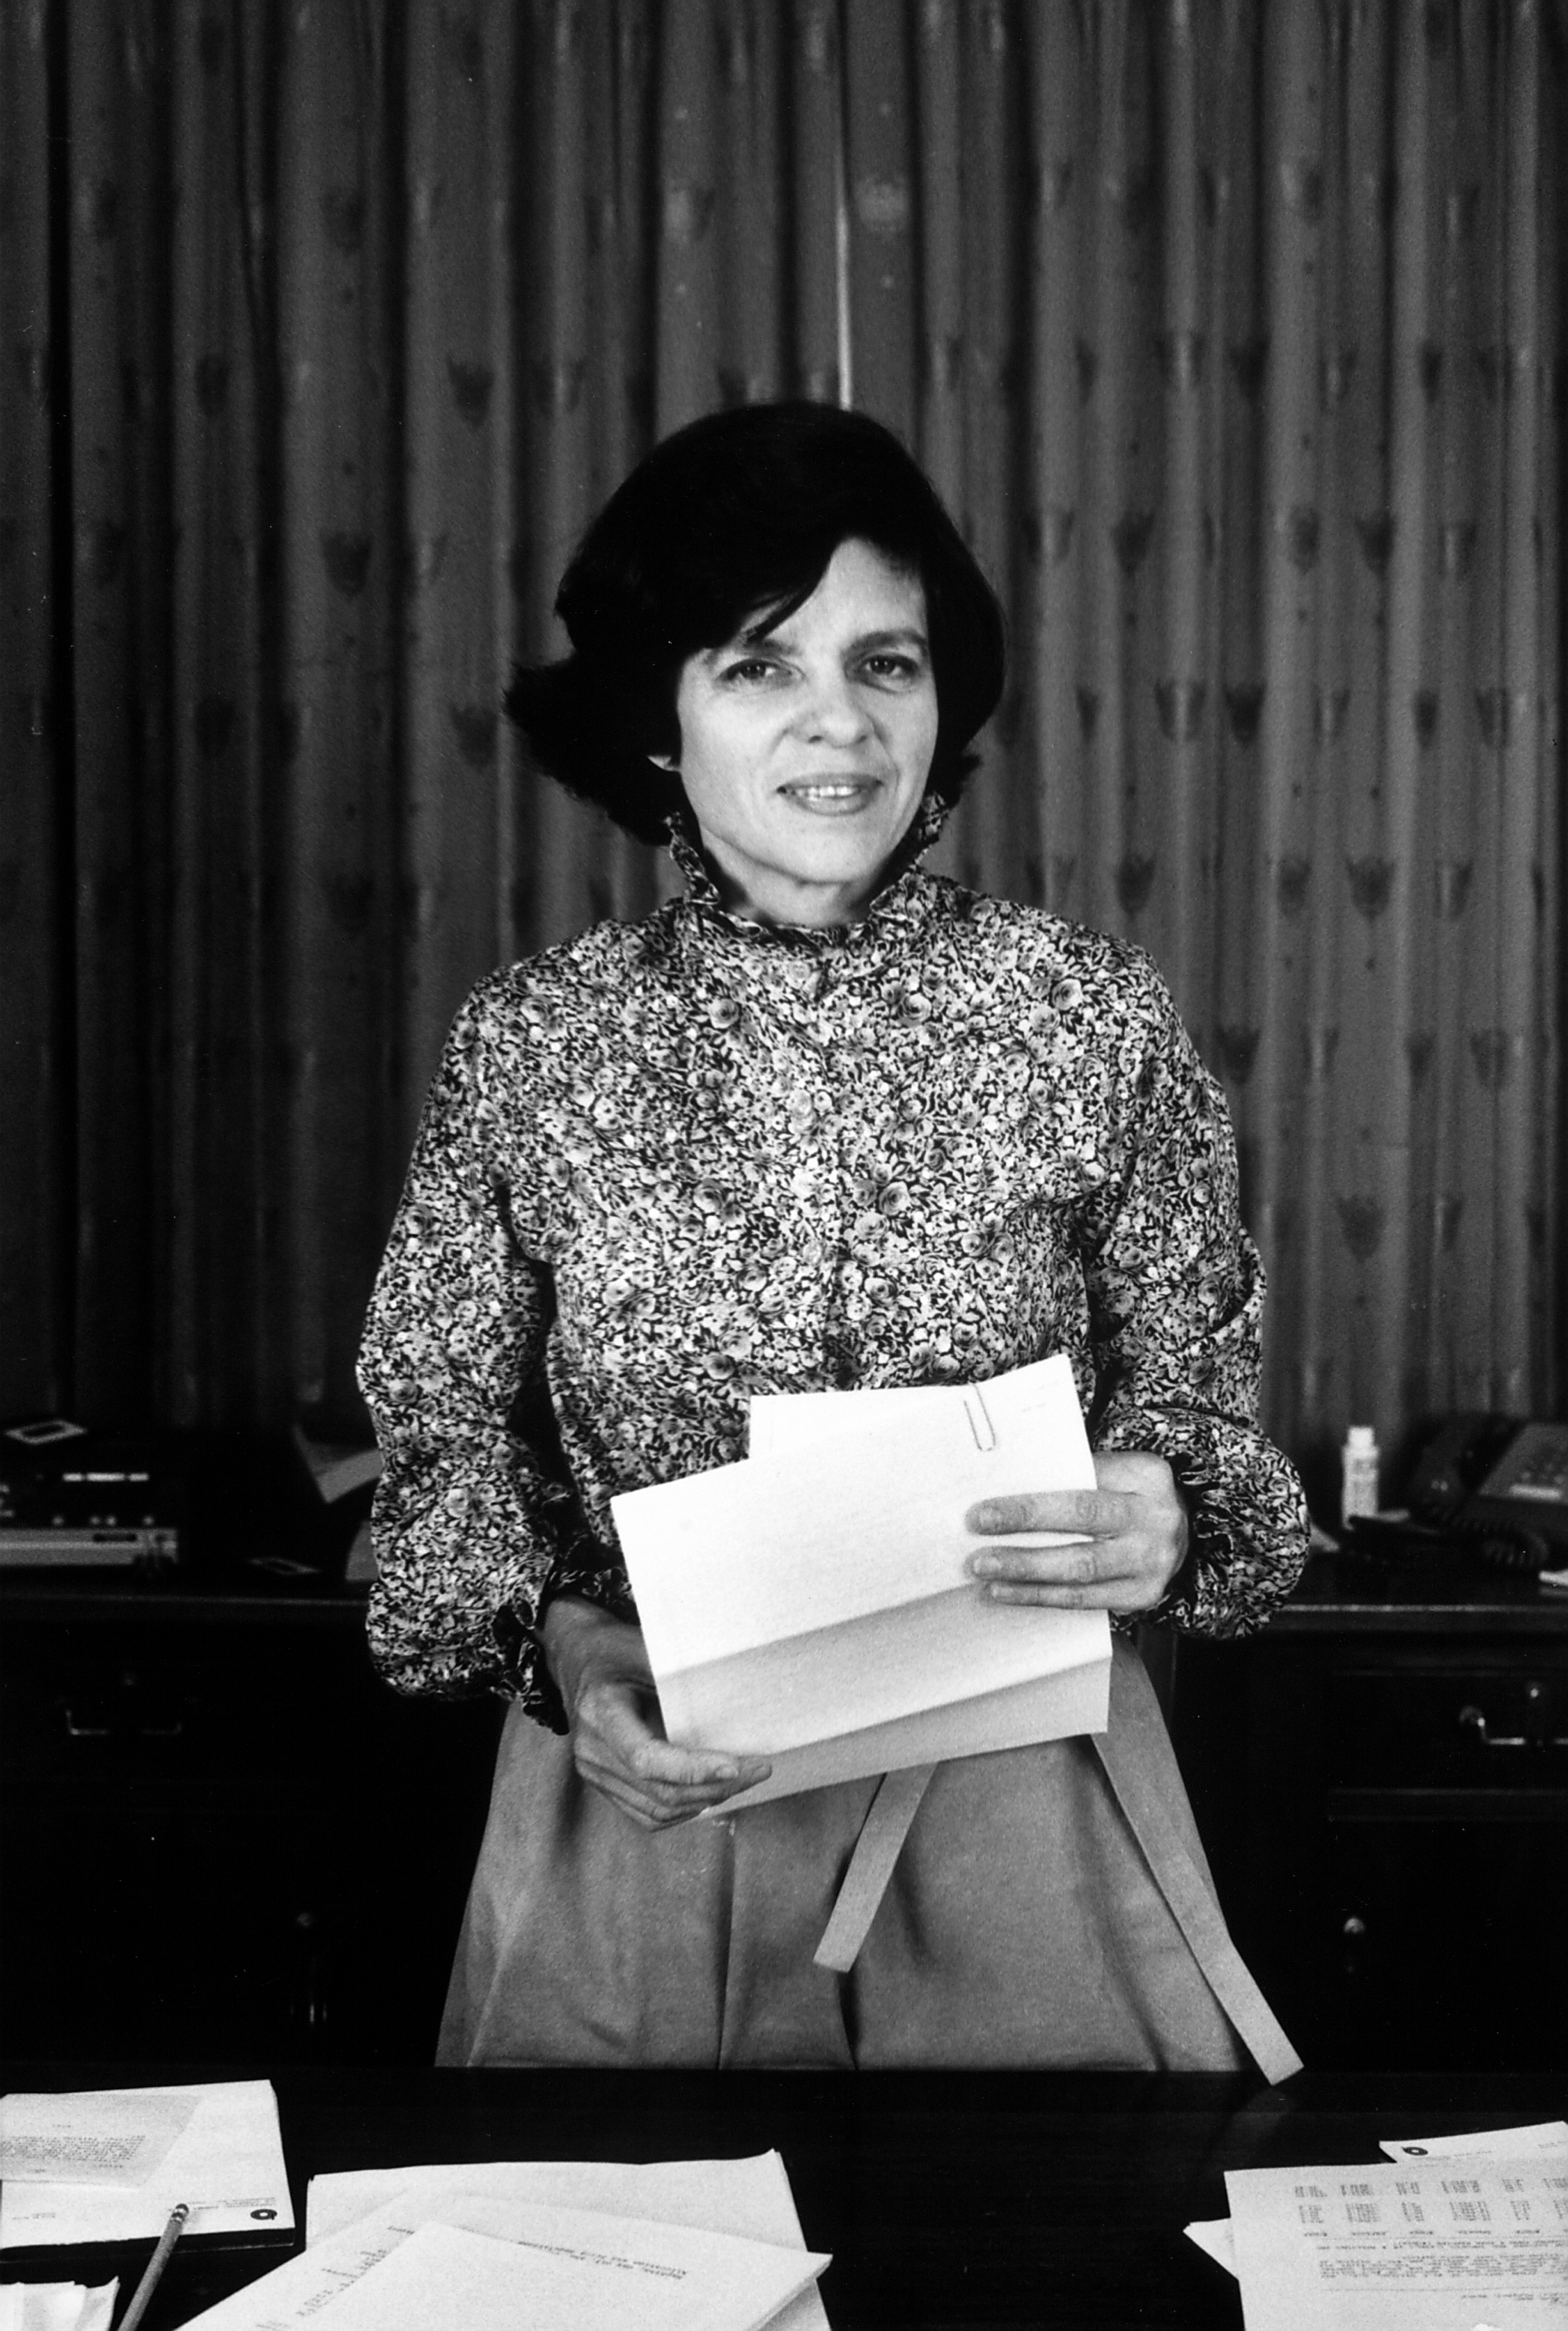 Alice Rivlin shaped every major policy debate of the past 40 years